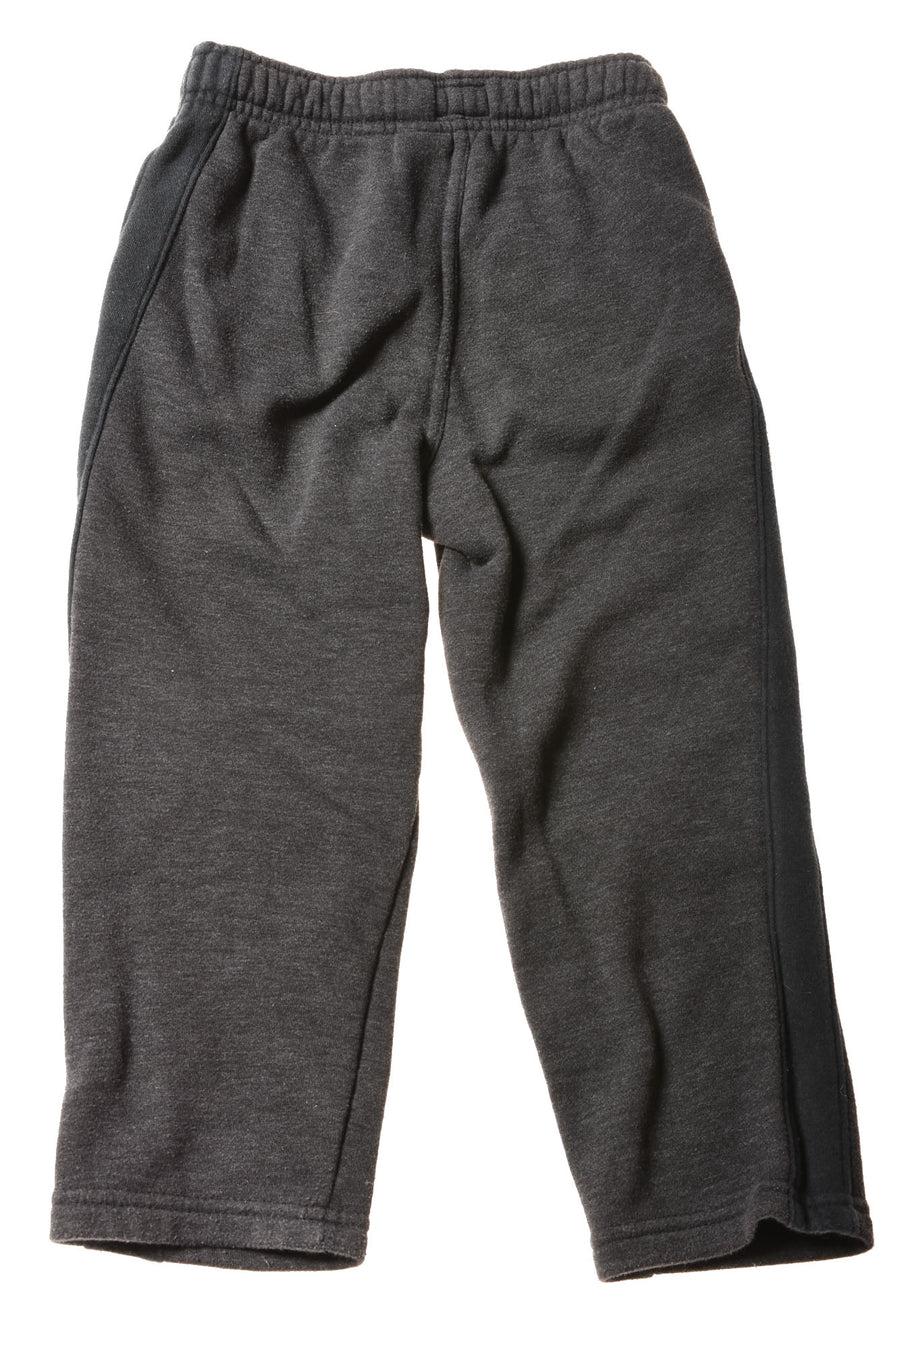 USED Oshkosh Toddler Boy's Sweat Pants 5 Gray